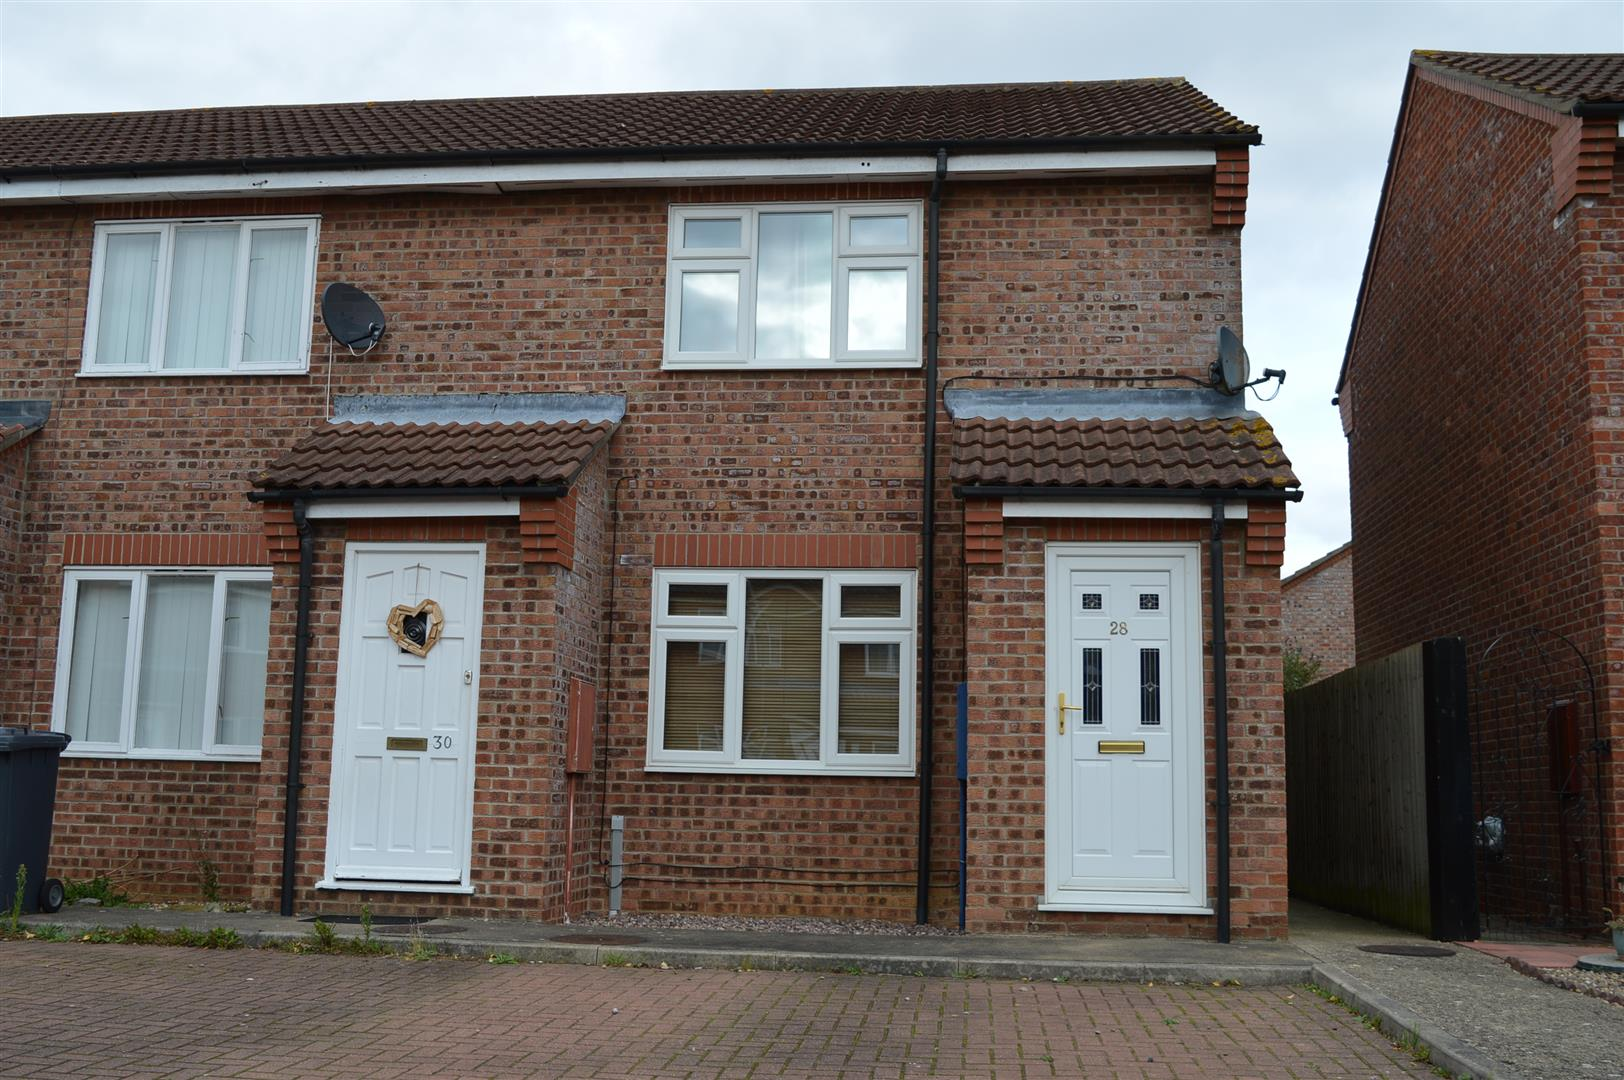 2 bedroom property in Sleaford